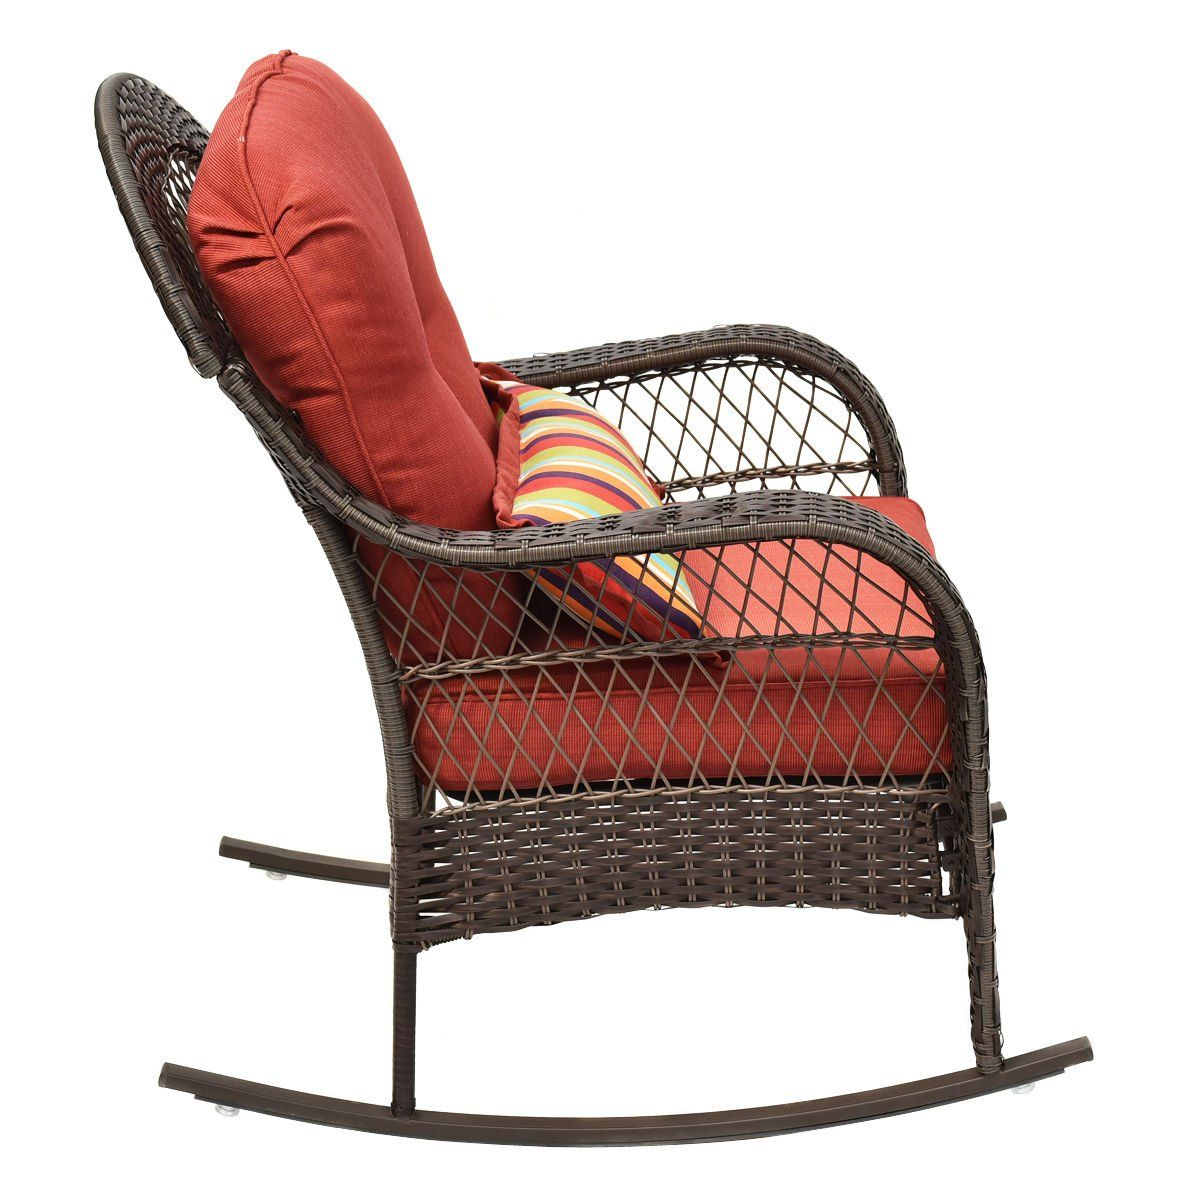 colibroxoutdoor wicker rocking chair porch deck rocker patio rh pinterest com